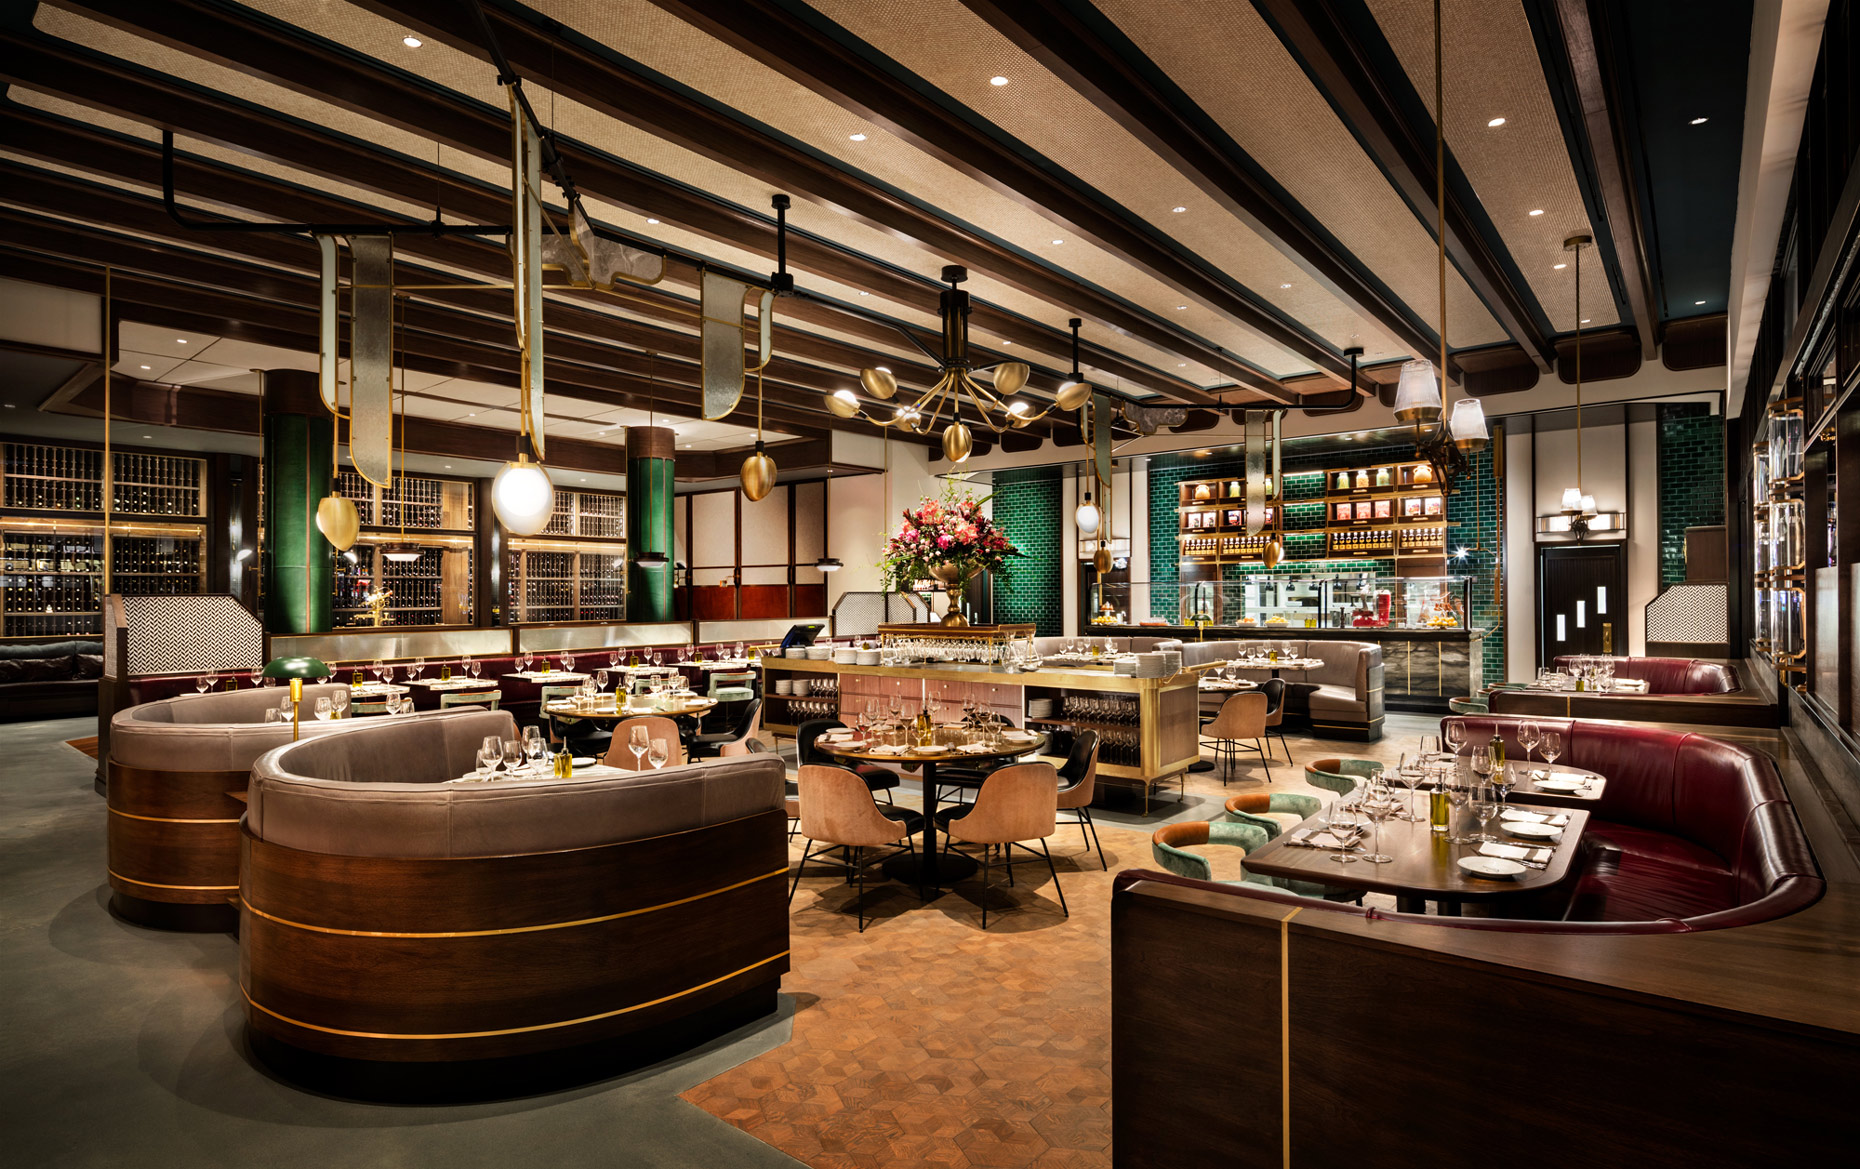 Main Dining of Michael Symon Restaurant by Parts and Labor Design